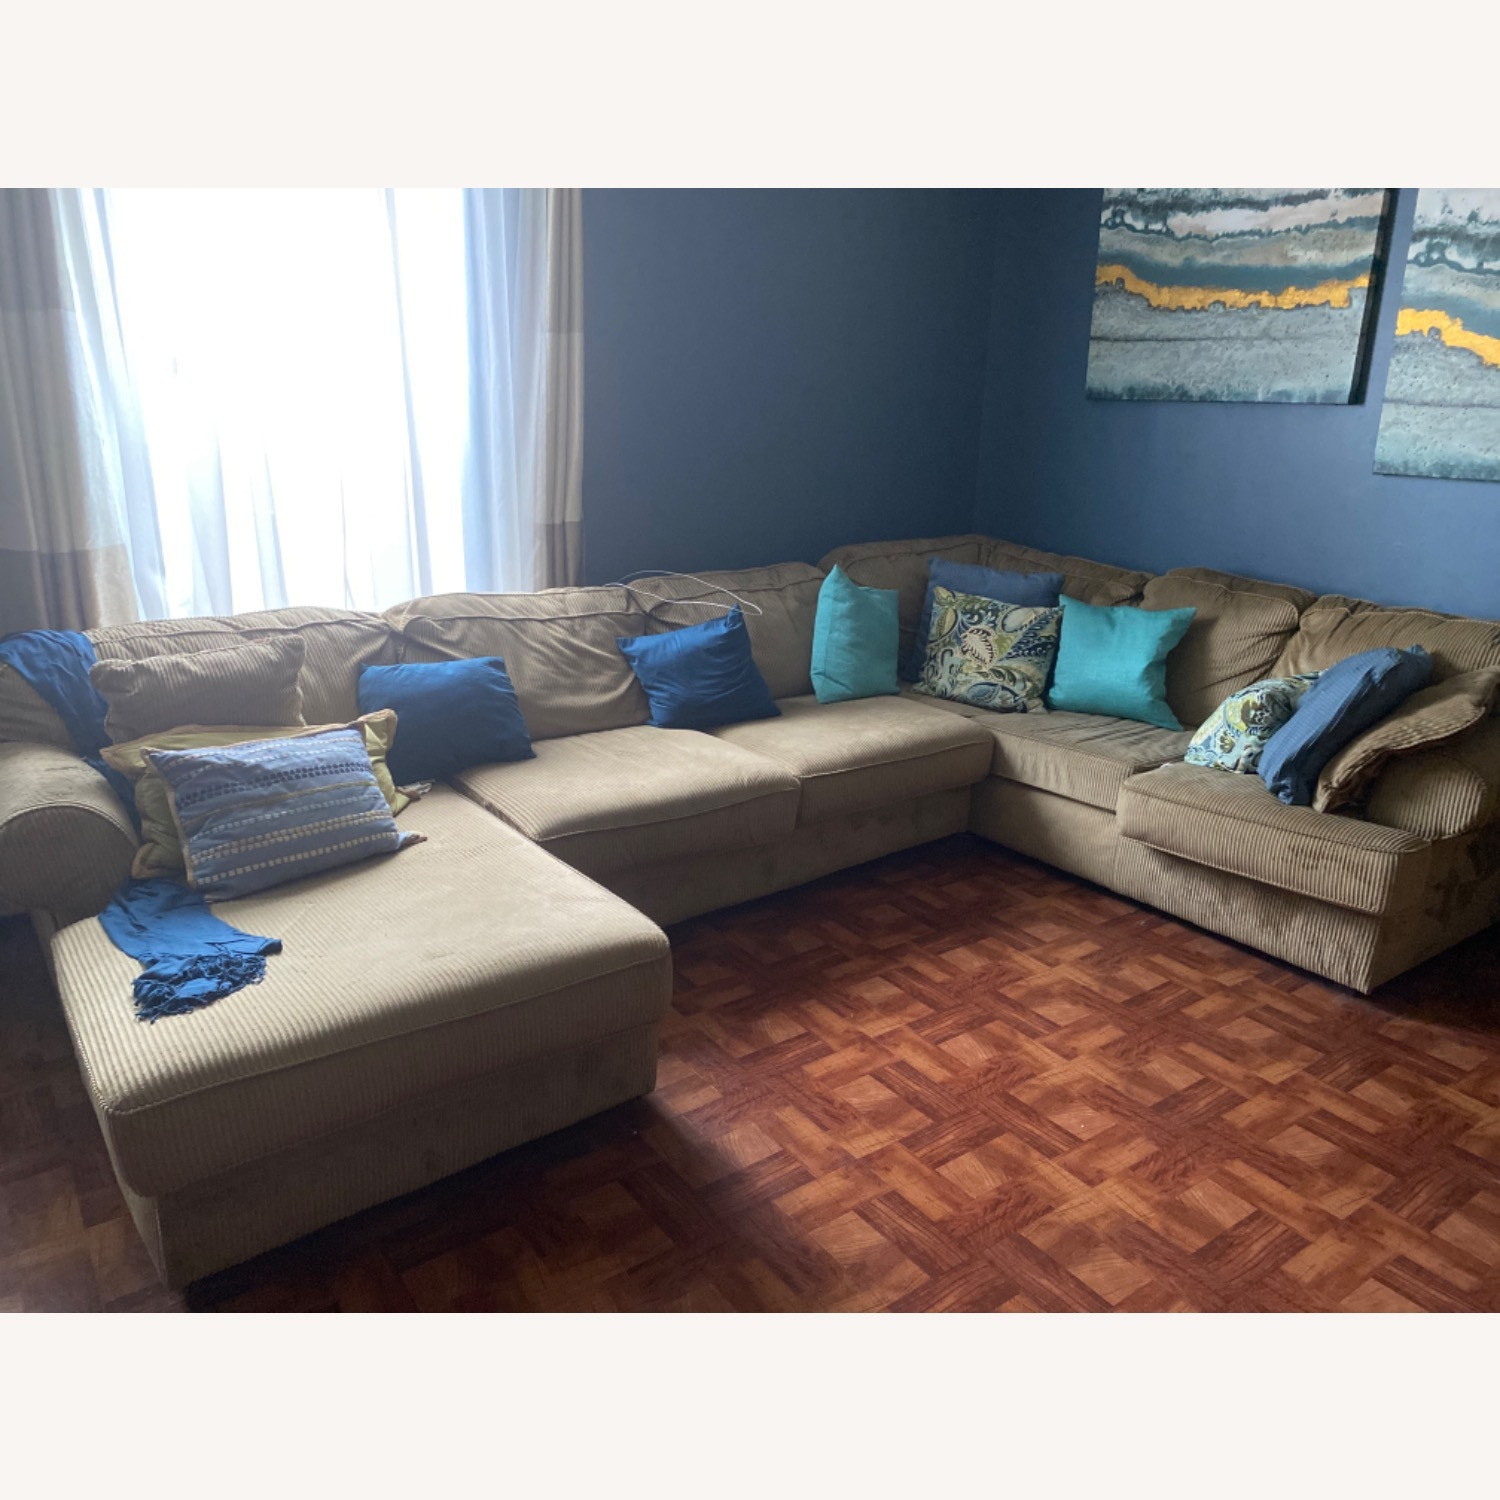 3 Piece Sectional - image-1